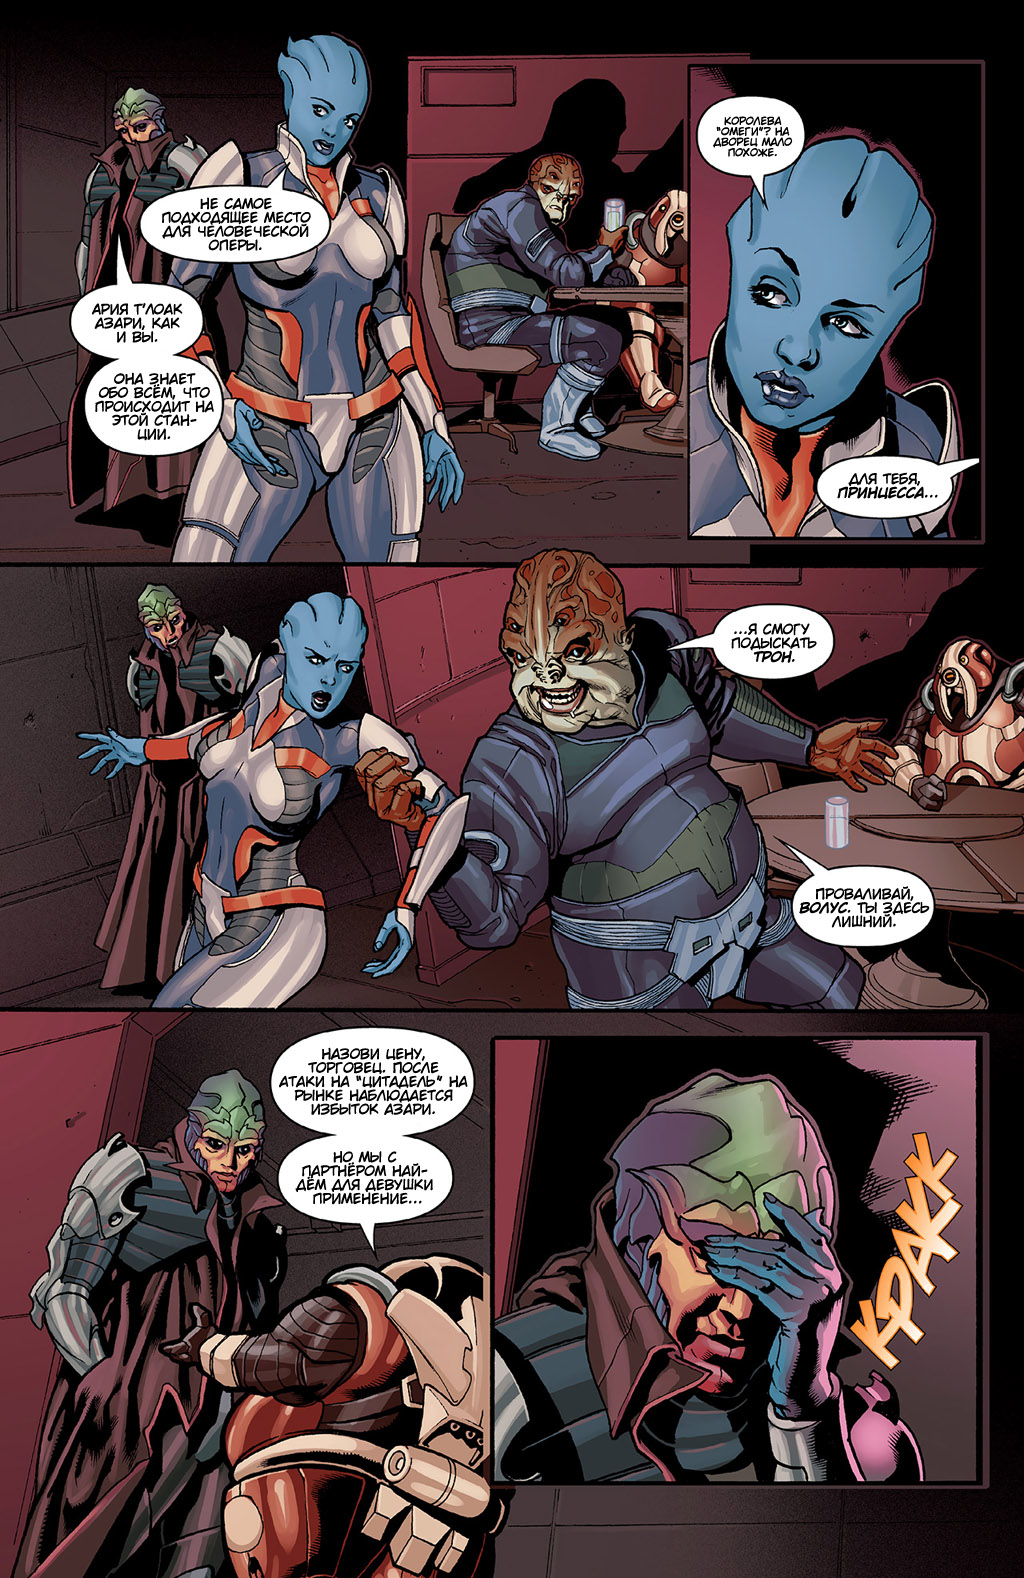 Mass Effect Redemption (part 2)